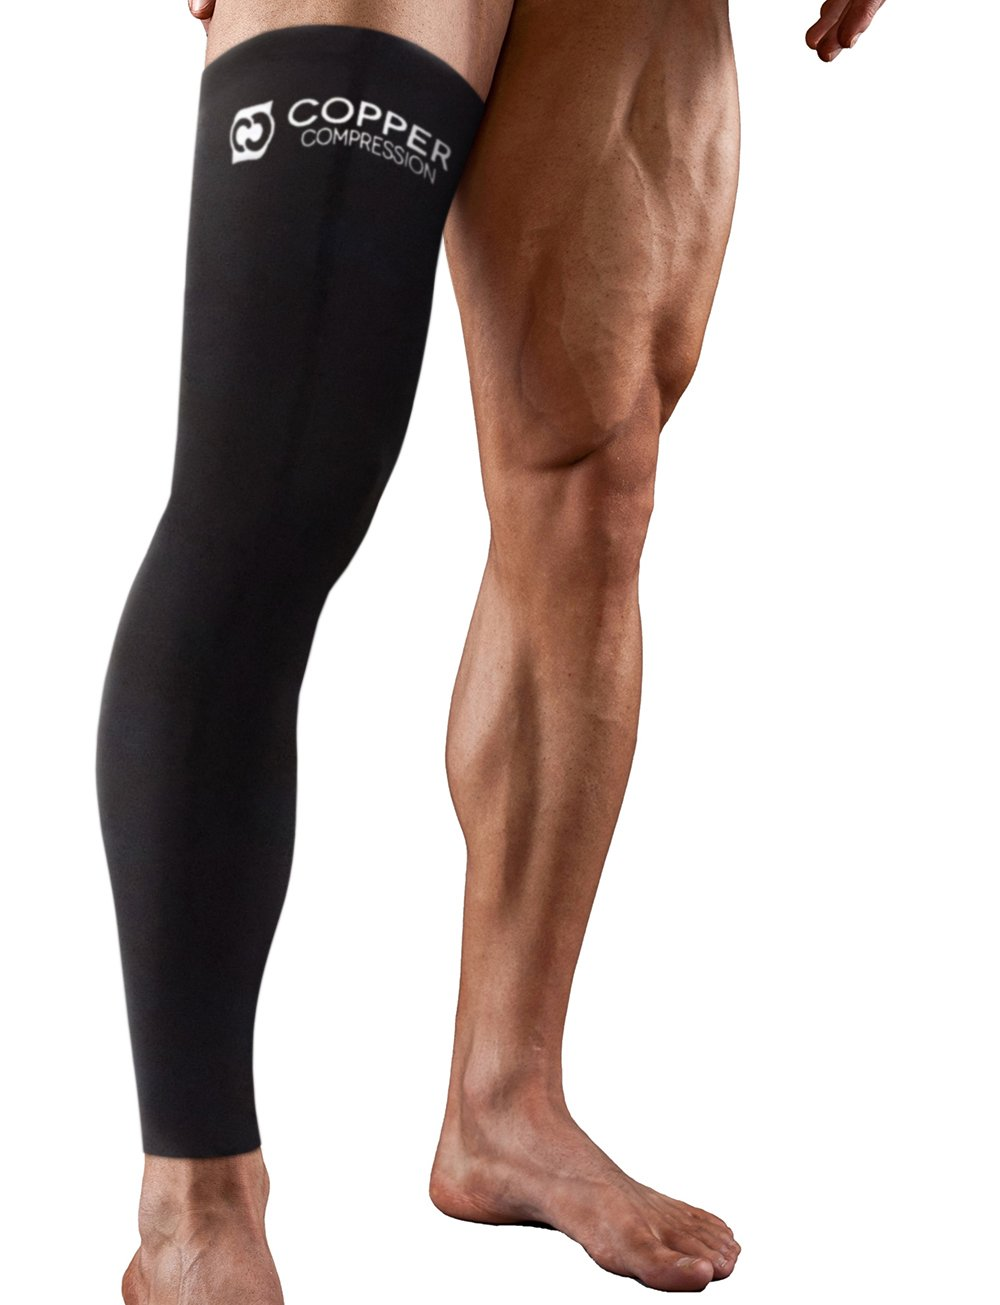 Copper Compression Full Leg Sleeve - GUARANTEED Highest Copper Sleeves & Pants. Single Leg Pant/Tights Fit for Men and Women. Copper Knee Brace/Thigh/Calf Support Socks. Basketball, Arthritis (Medium)